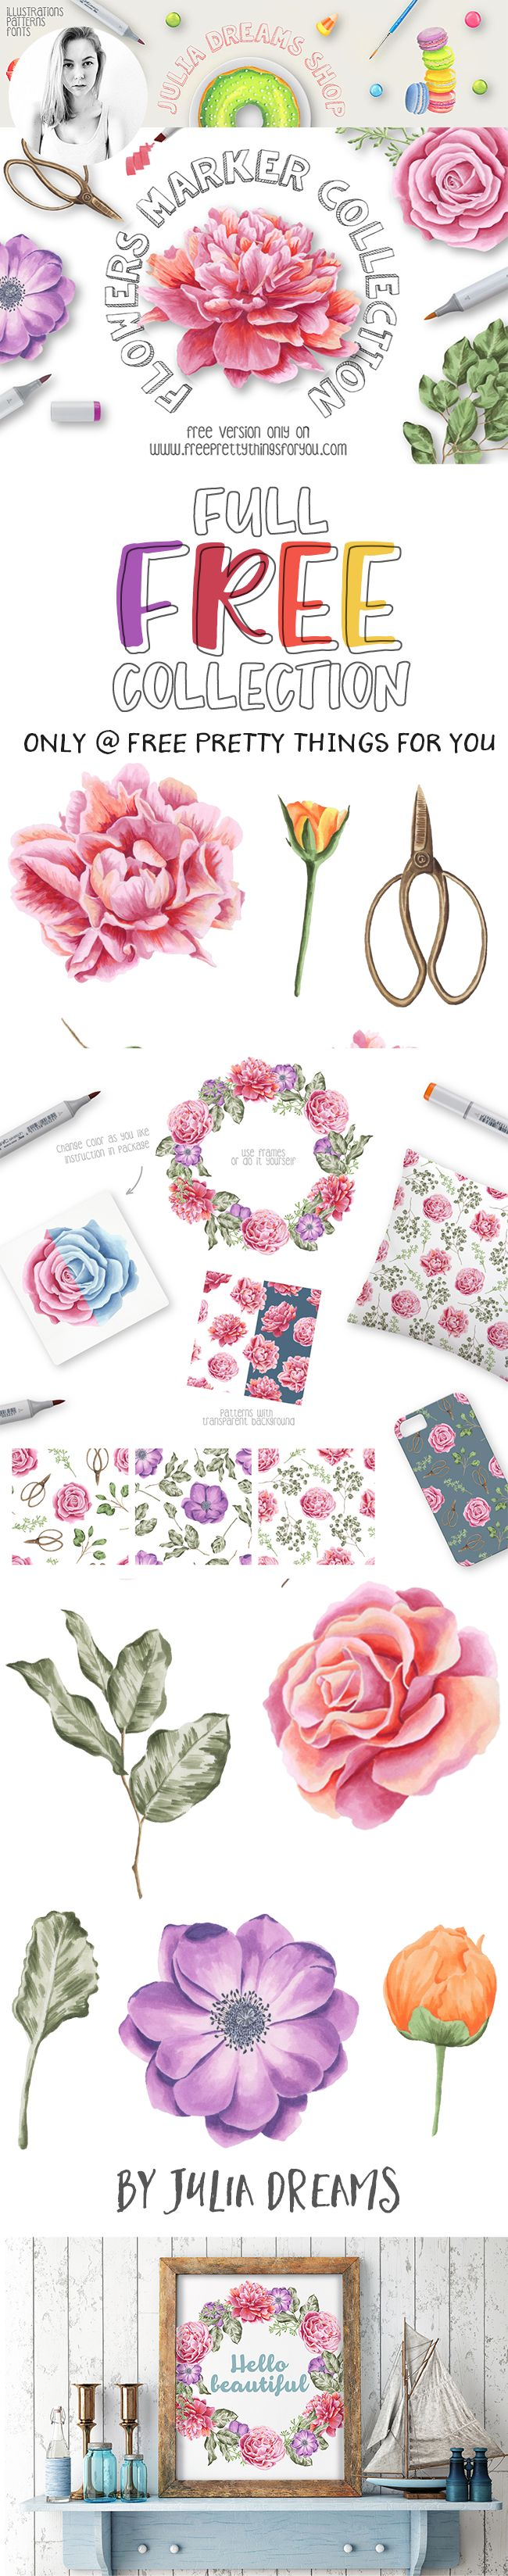 FEATURED DESIGNER: Julia Dreams+FREE Full Flower Marker Collection!!